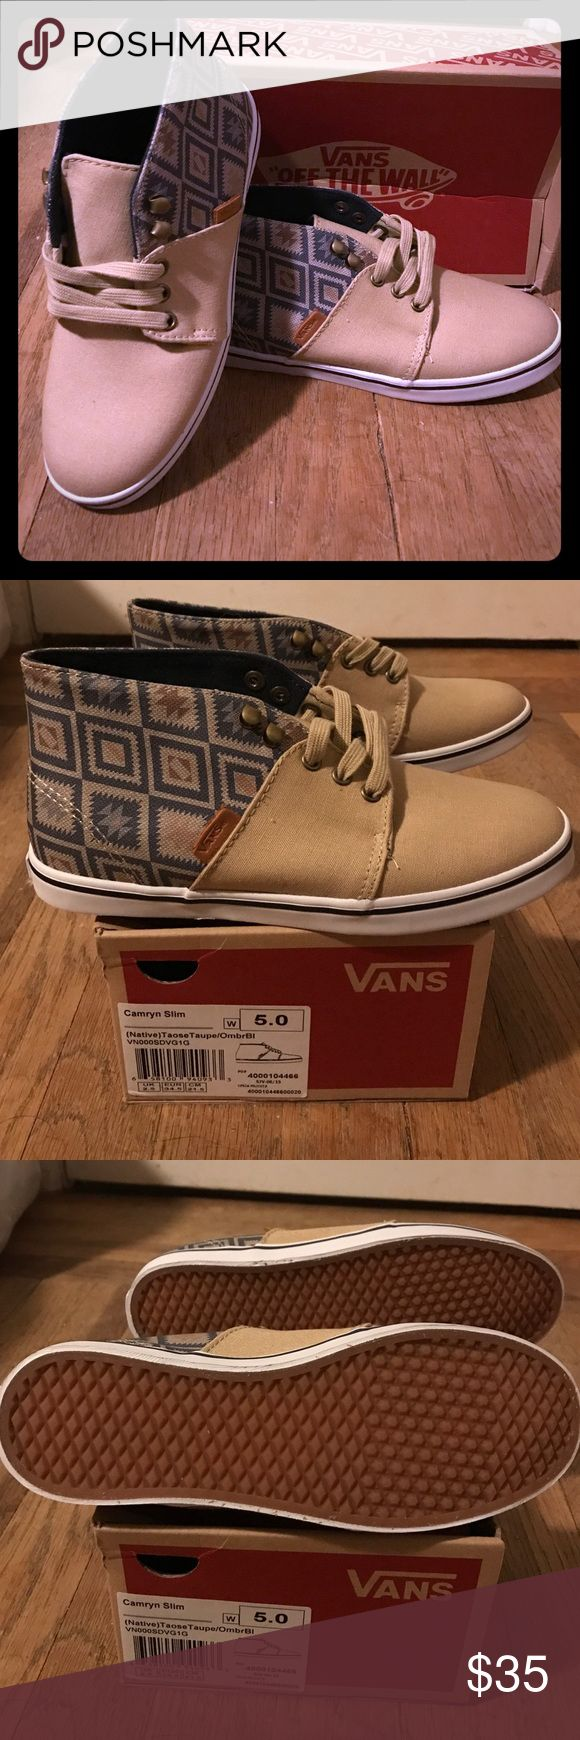 NWIB Vans booties ❤️🎶😄 Brand new in box. Cute casual booties buy Vans. I have a shopping problem and buy things I don't need. My loss your gain lol. Brand new! Very cute and stylish. 😄❤️ Vans Shoes Lace Up Boots